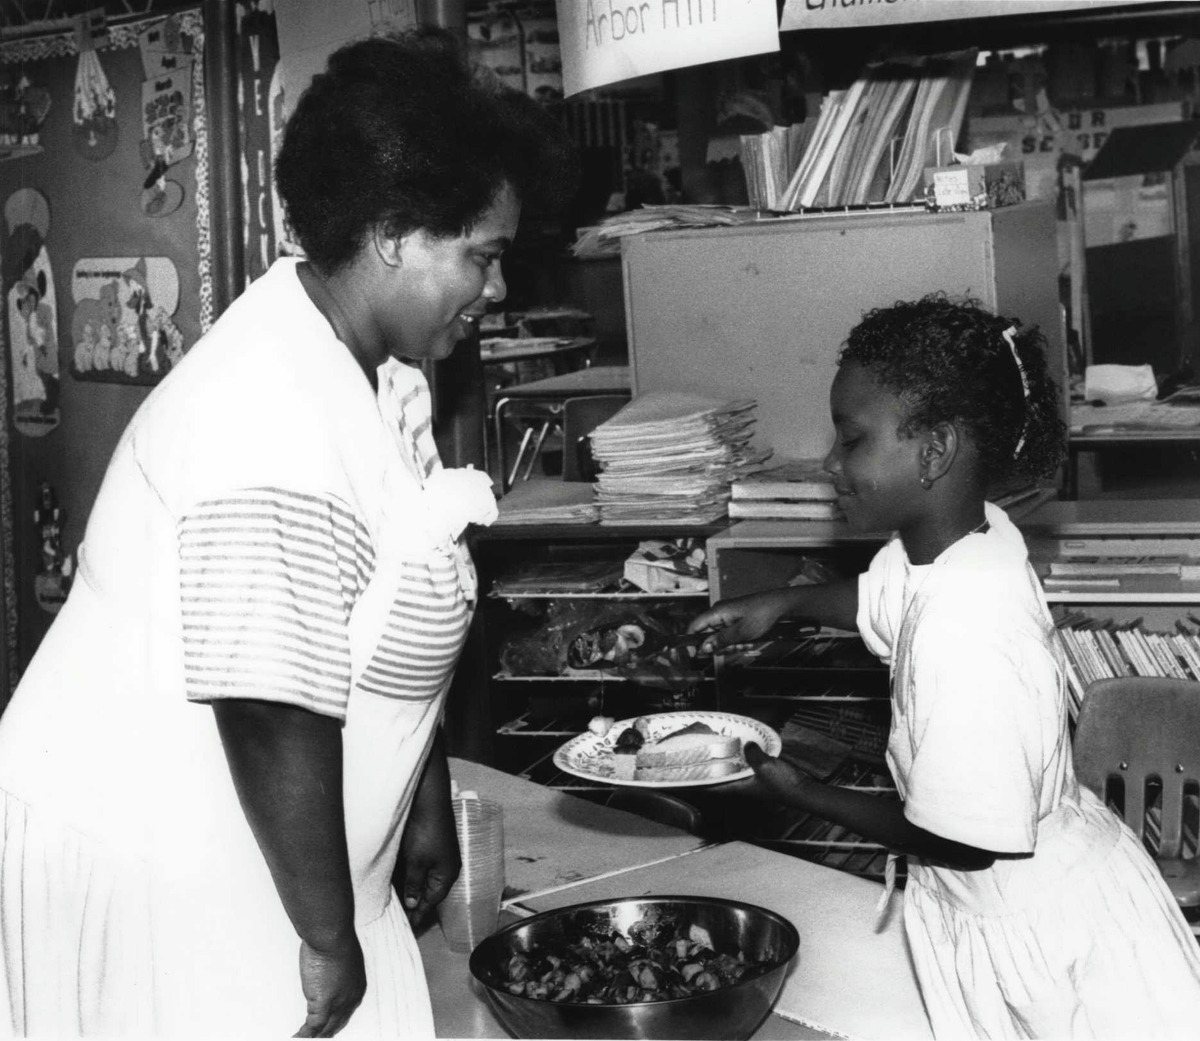 Arbor Hill Elementary School, Albany, New York - 2nd grade students serve their mothers lunch for Mothers Day - Margaret Leon with Shawan Lumpkin (age 8). Shawan serves her mother lunch. May 06, 1988 (Arnold LeFevre/Times Union Archive)